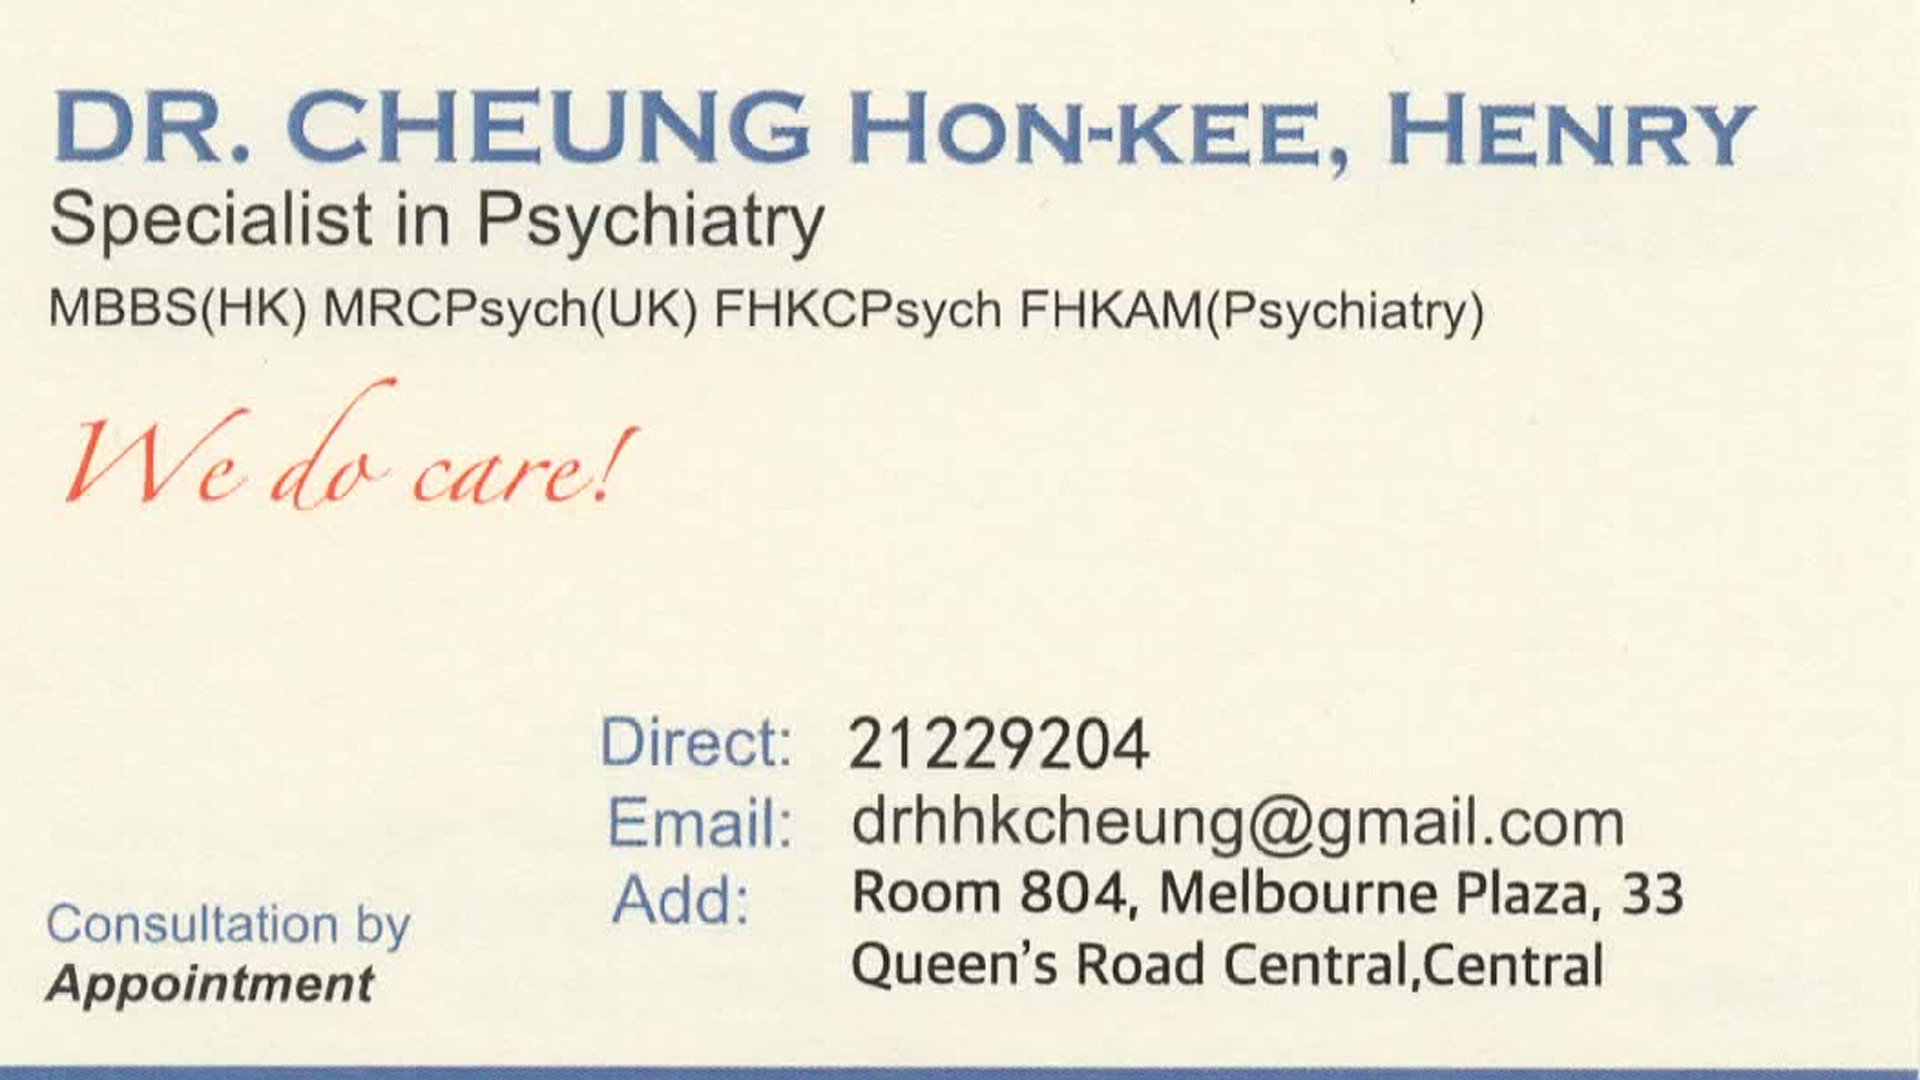 Dr Cheung Hon Kee, Henry Name Card